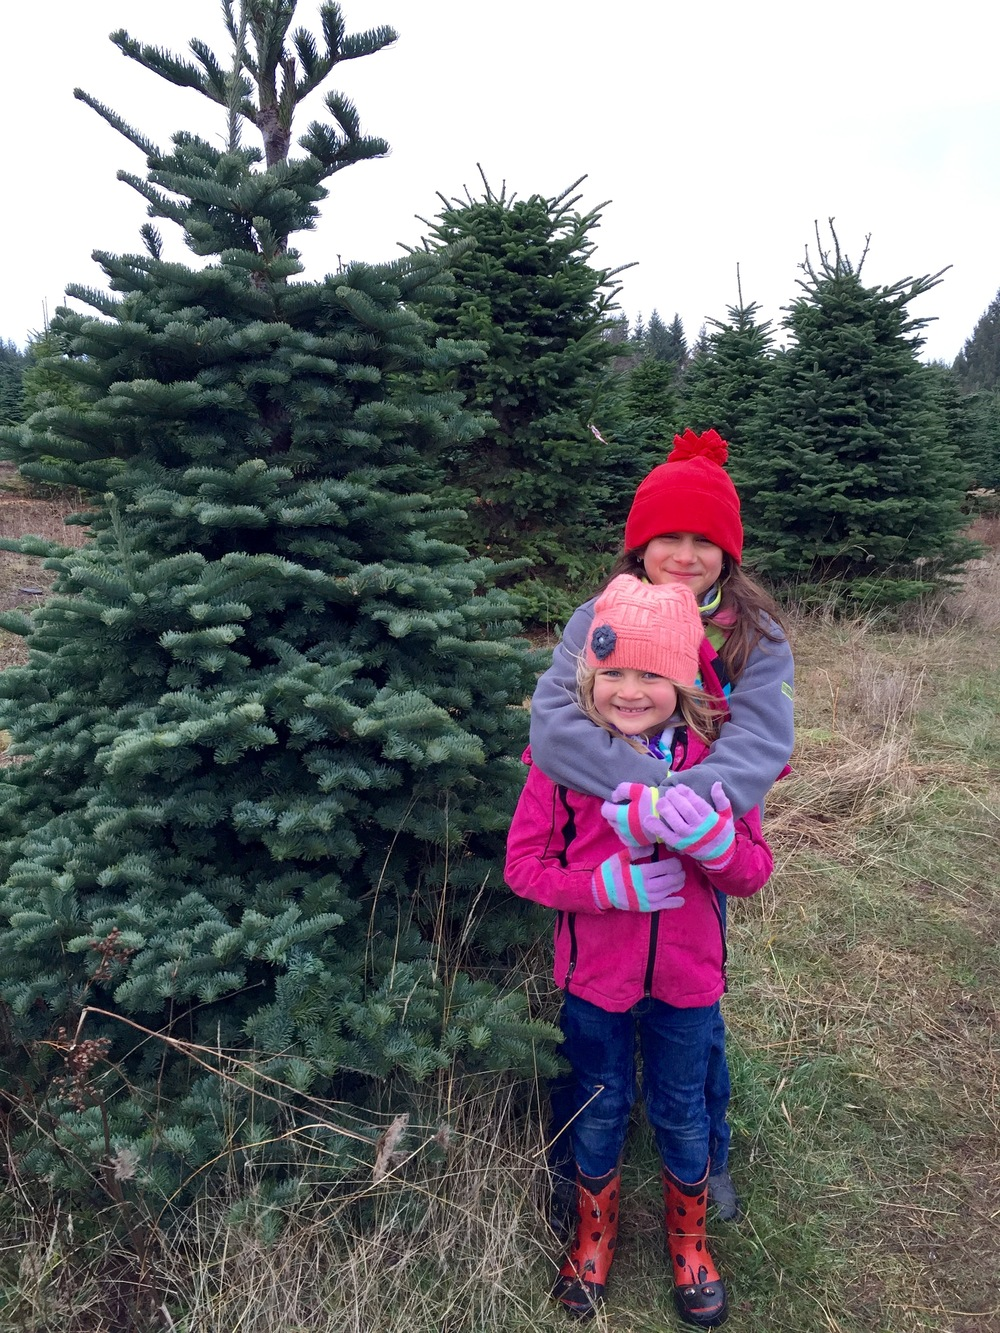 Happy (Christmas Tree) Hunting!